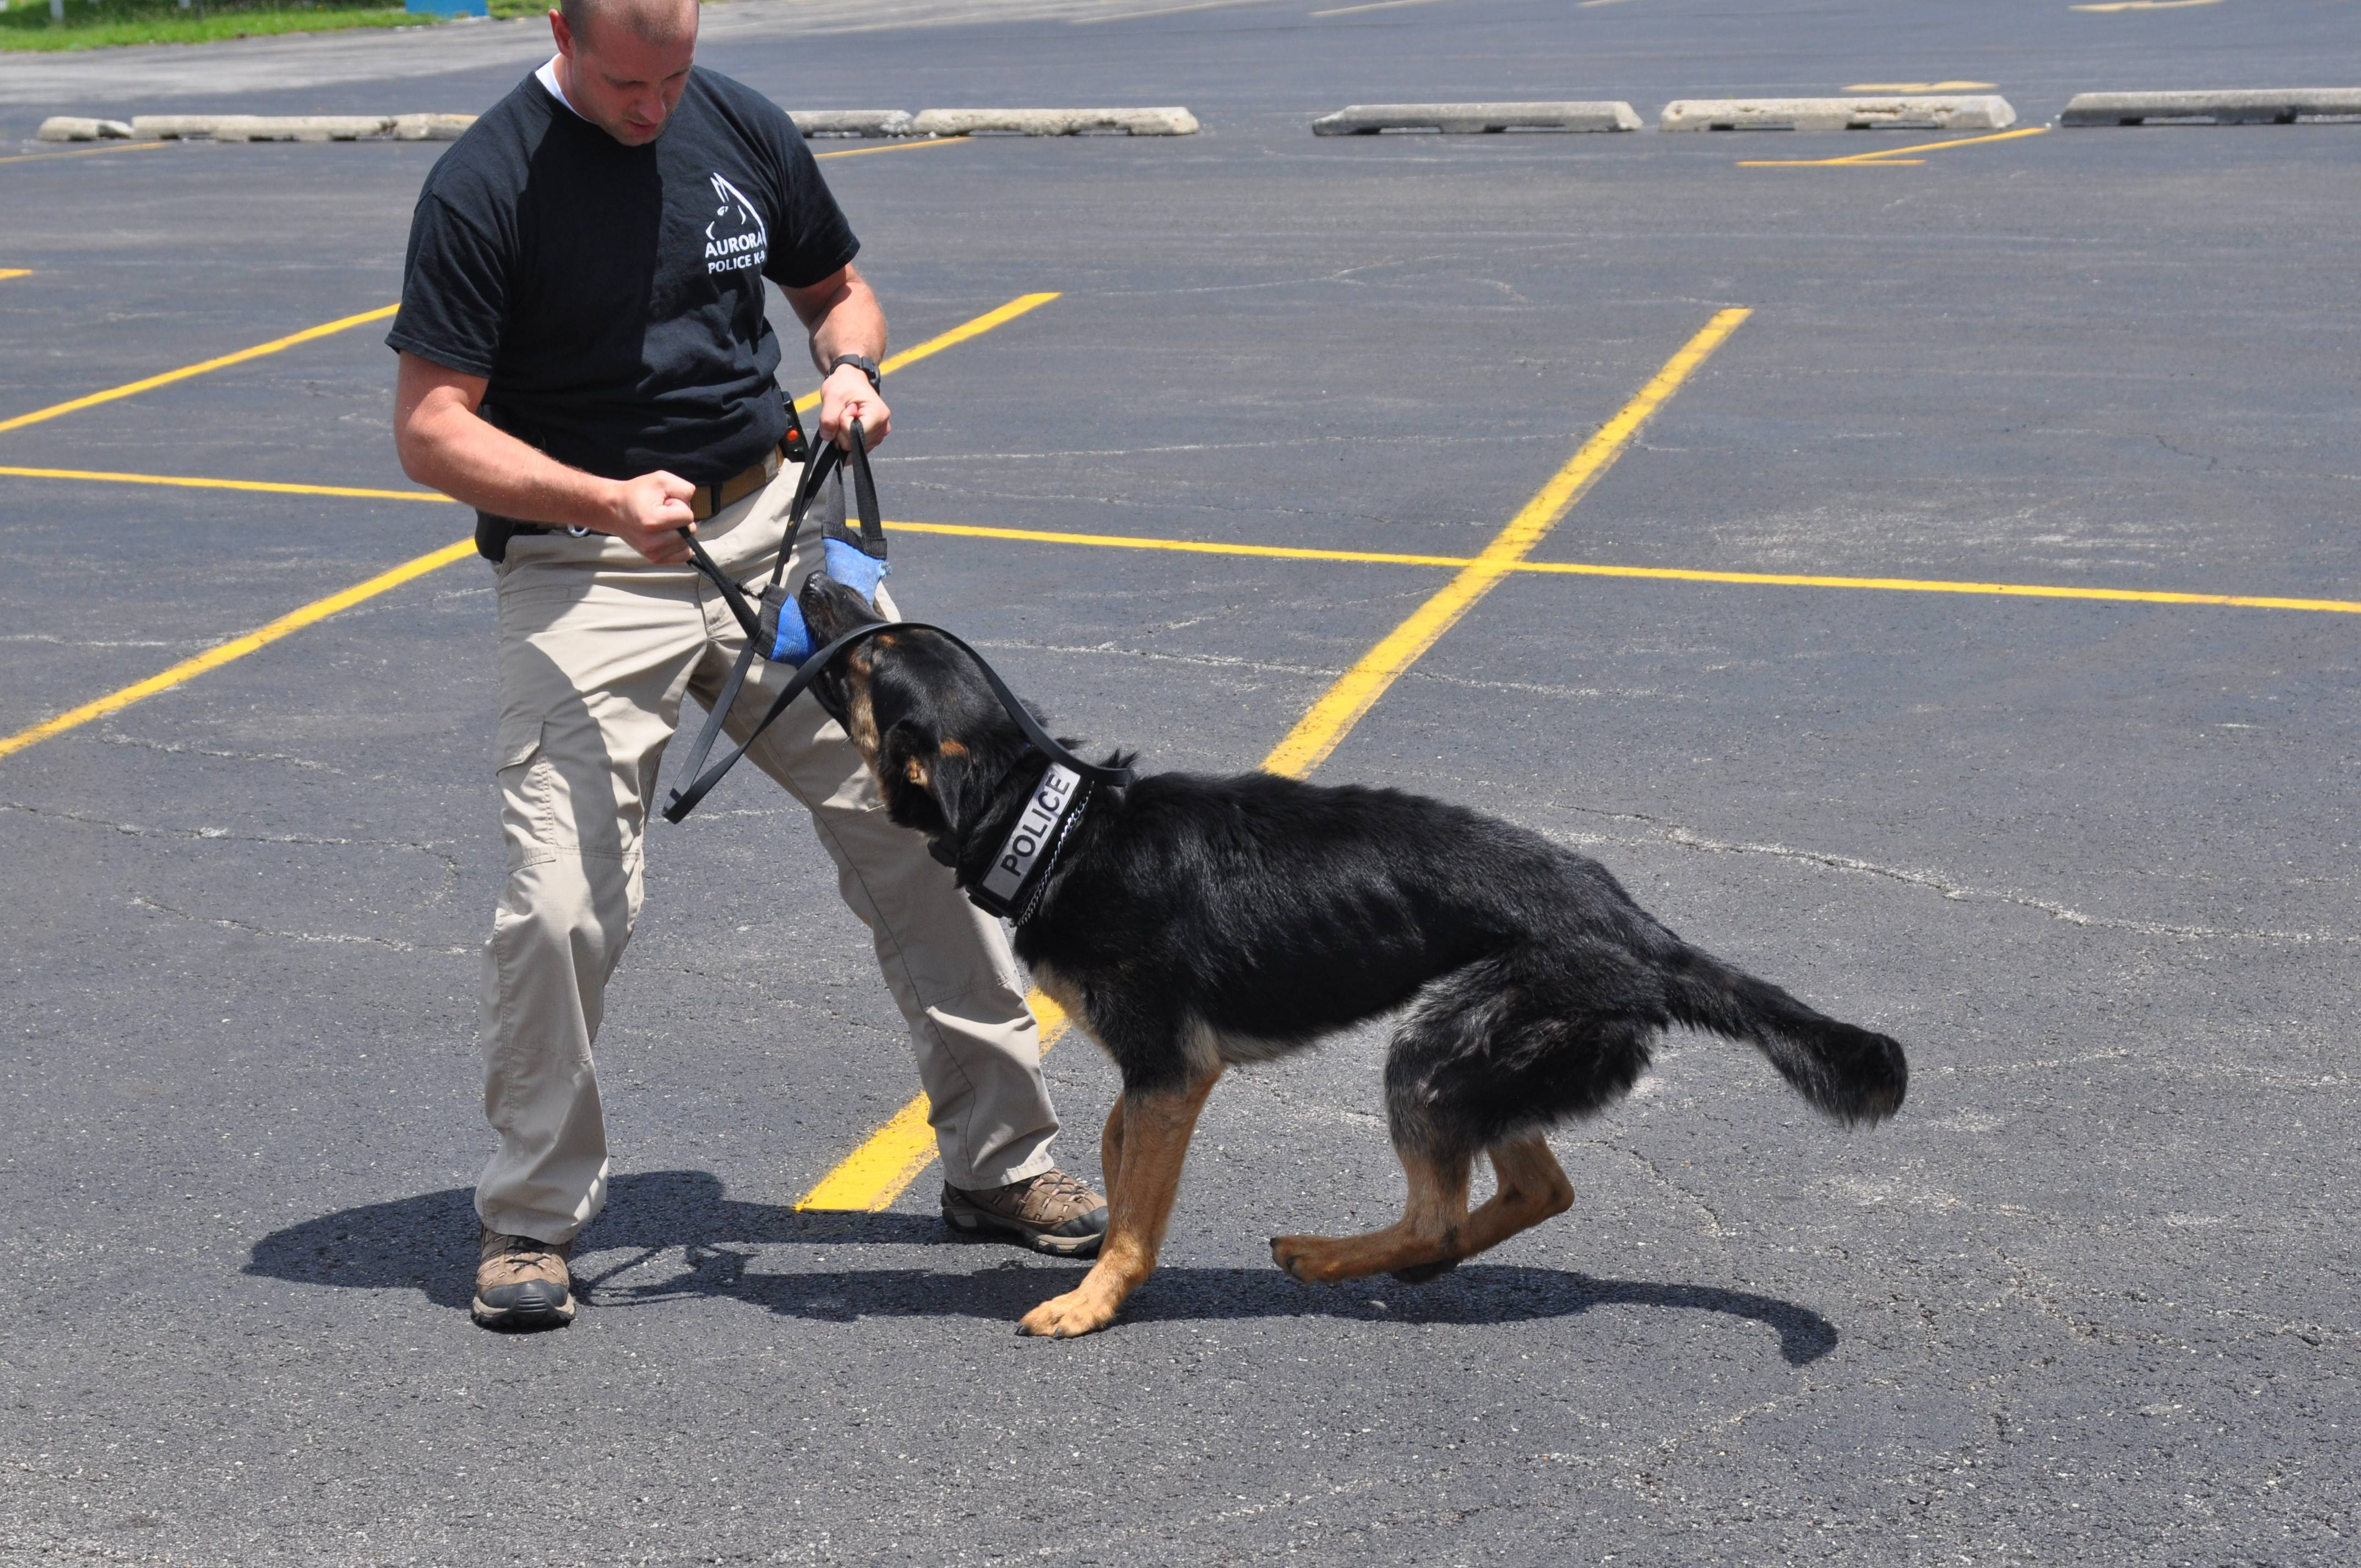 Aurora Police Department K-9 unit dogs charm Noon Lions Club members at the club's July 7 luncheon meeting. Led by his handler, Officer Matt Bonnie, Akroy demonstrates his skills by finding a wallet hidden in a grass yard and a dog toy in a squad car.